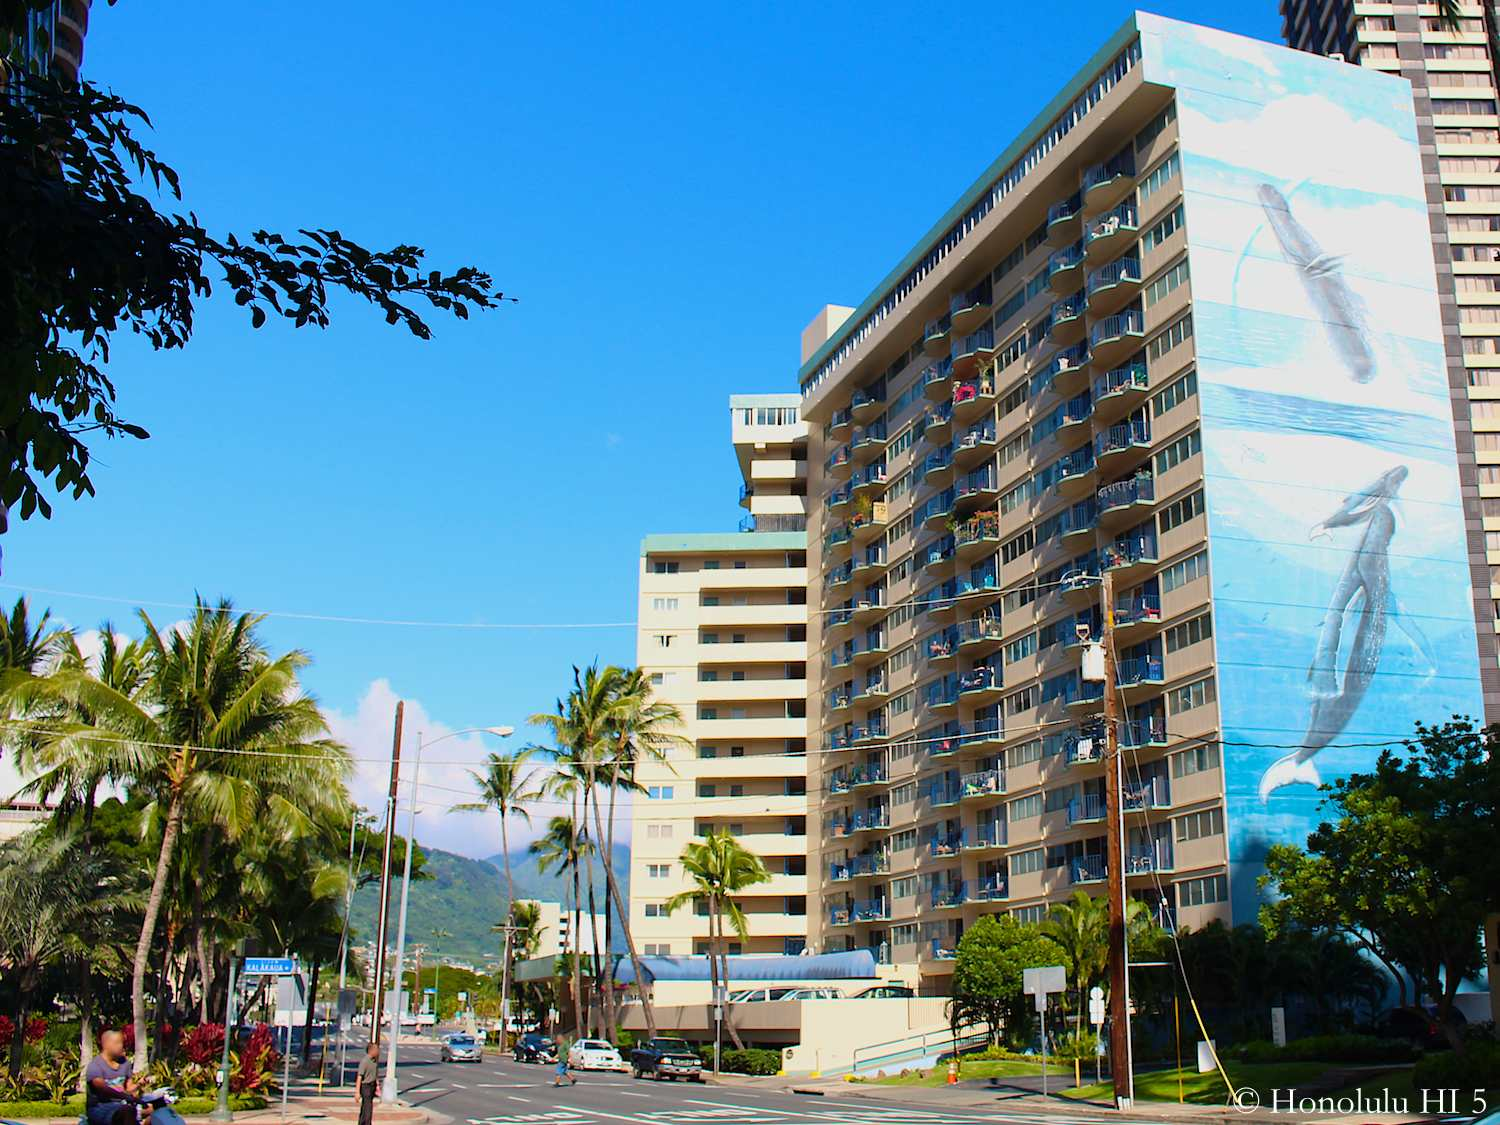 Royal Aloha Condo in Waikiki Seen from Kalakaua with Mountain in Background